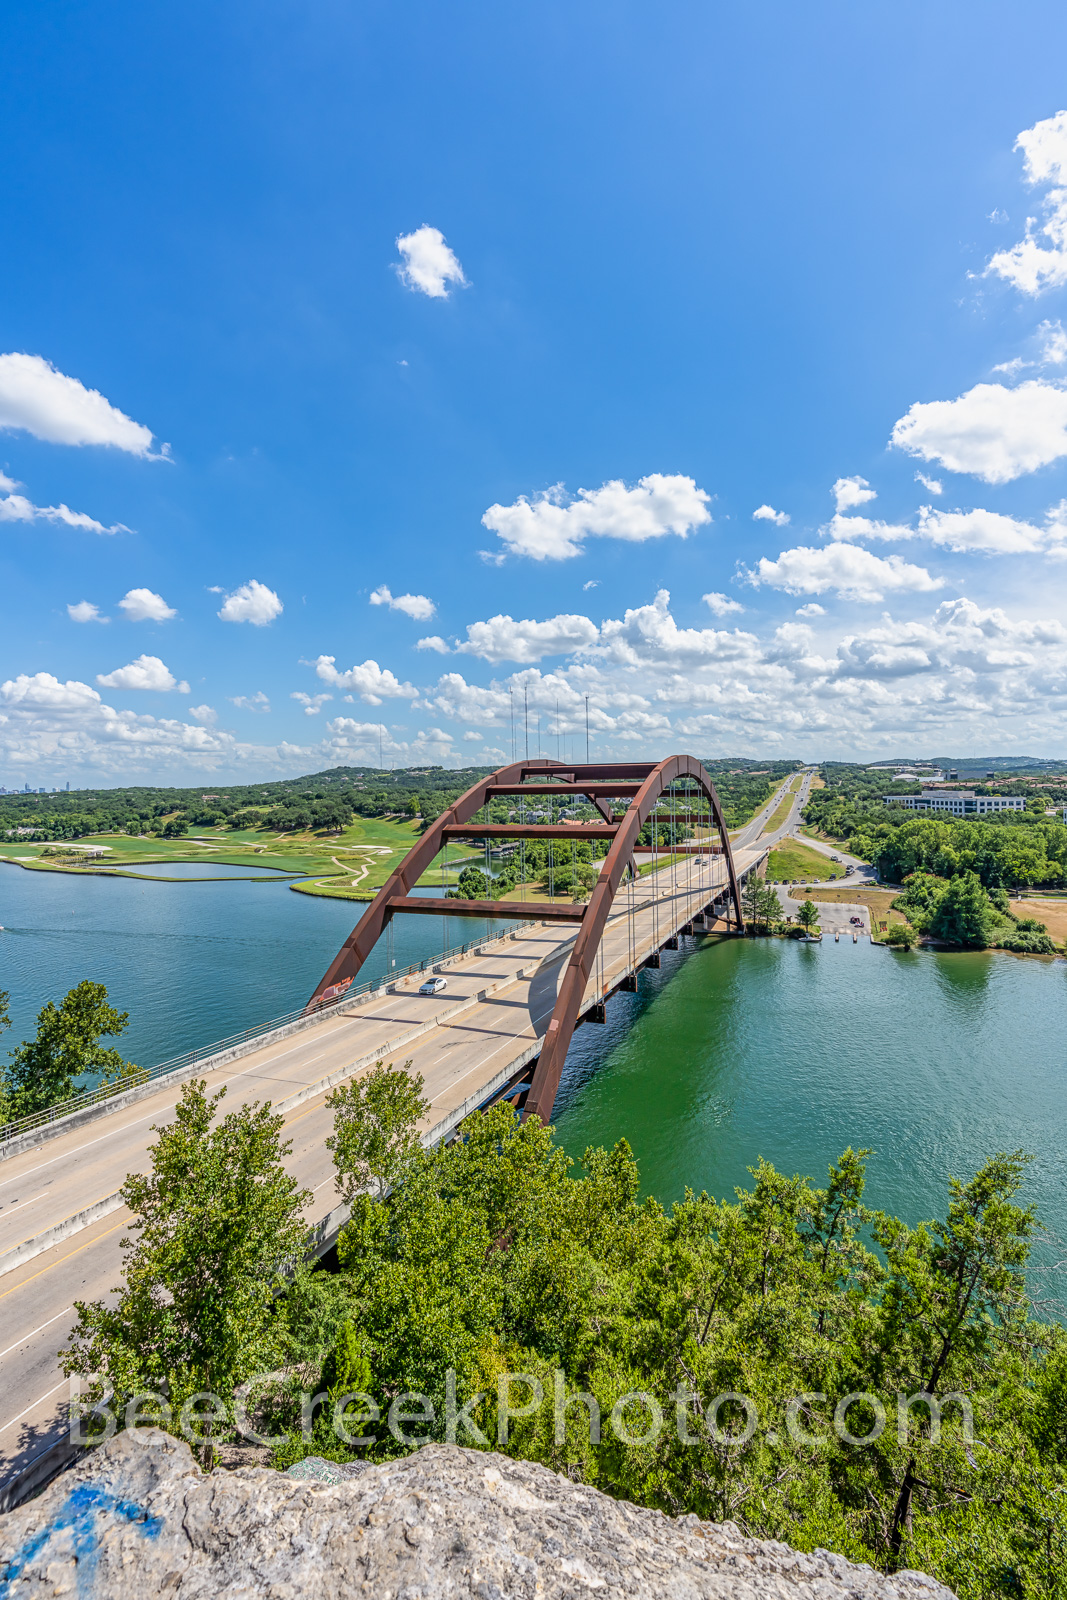 Austin Texas, 360 Bridge, Pennybacker Bridge, 360 hwy, texas hill country, lake austin, downtown austin, city of austin, hill coutry, Capital of Texas Highway, pennybacker overlook,Percy V. , vertical, photo